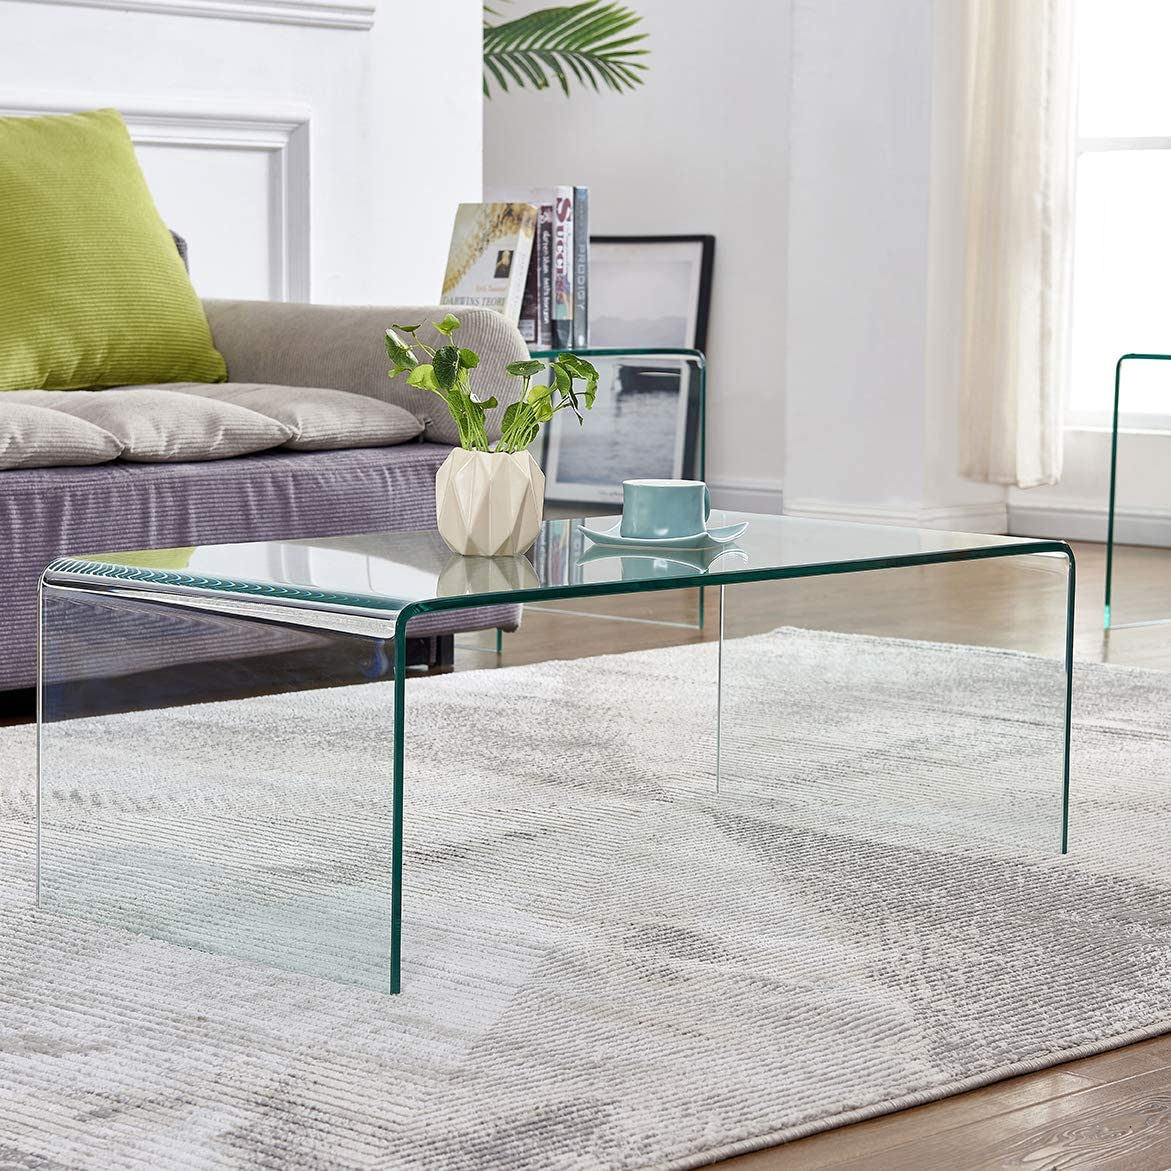 Amazon.com: Glass Coffee Table for Living Room Tempered Glass Modern Coffee  Table Clear End Table Outdoor Table: Home & Kitchen